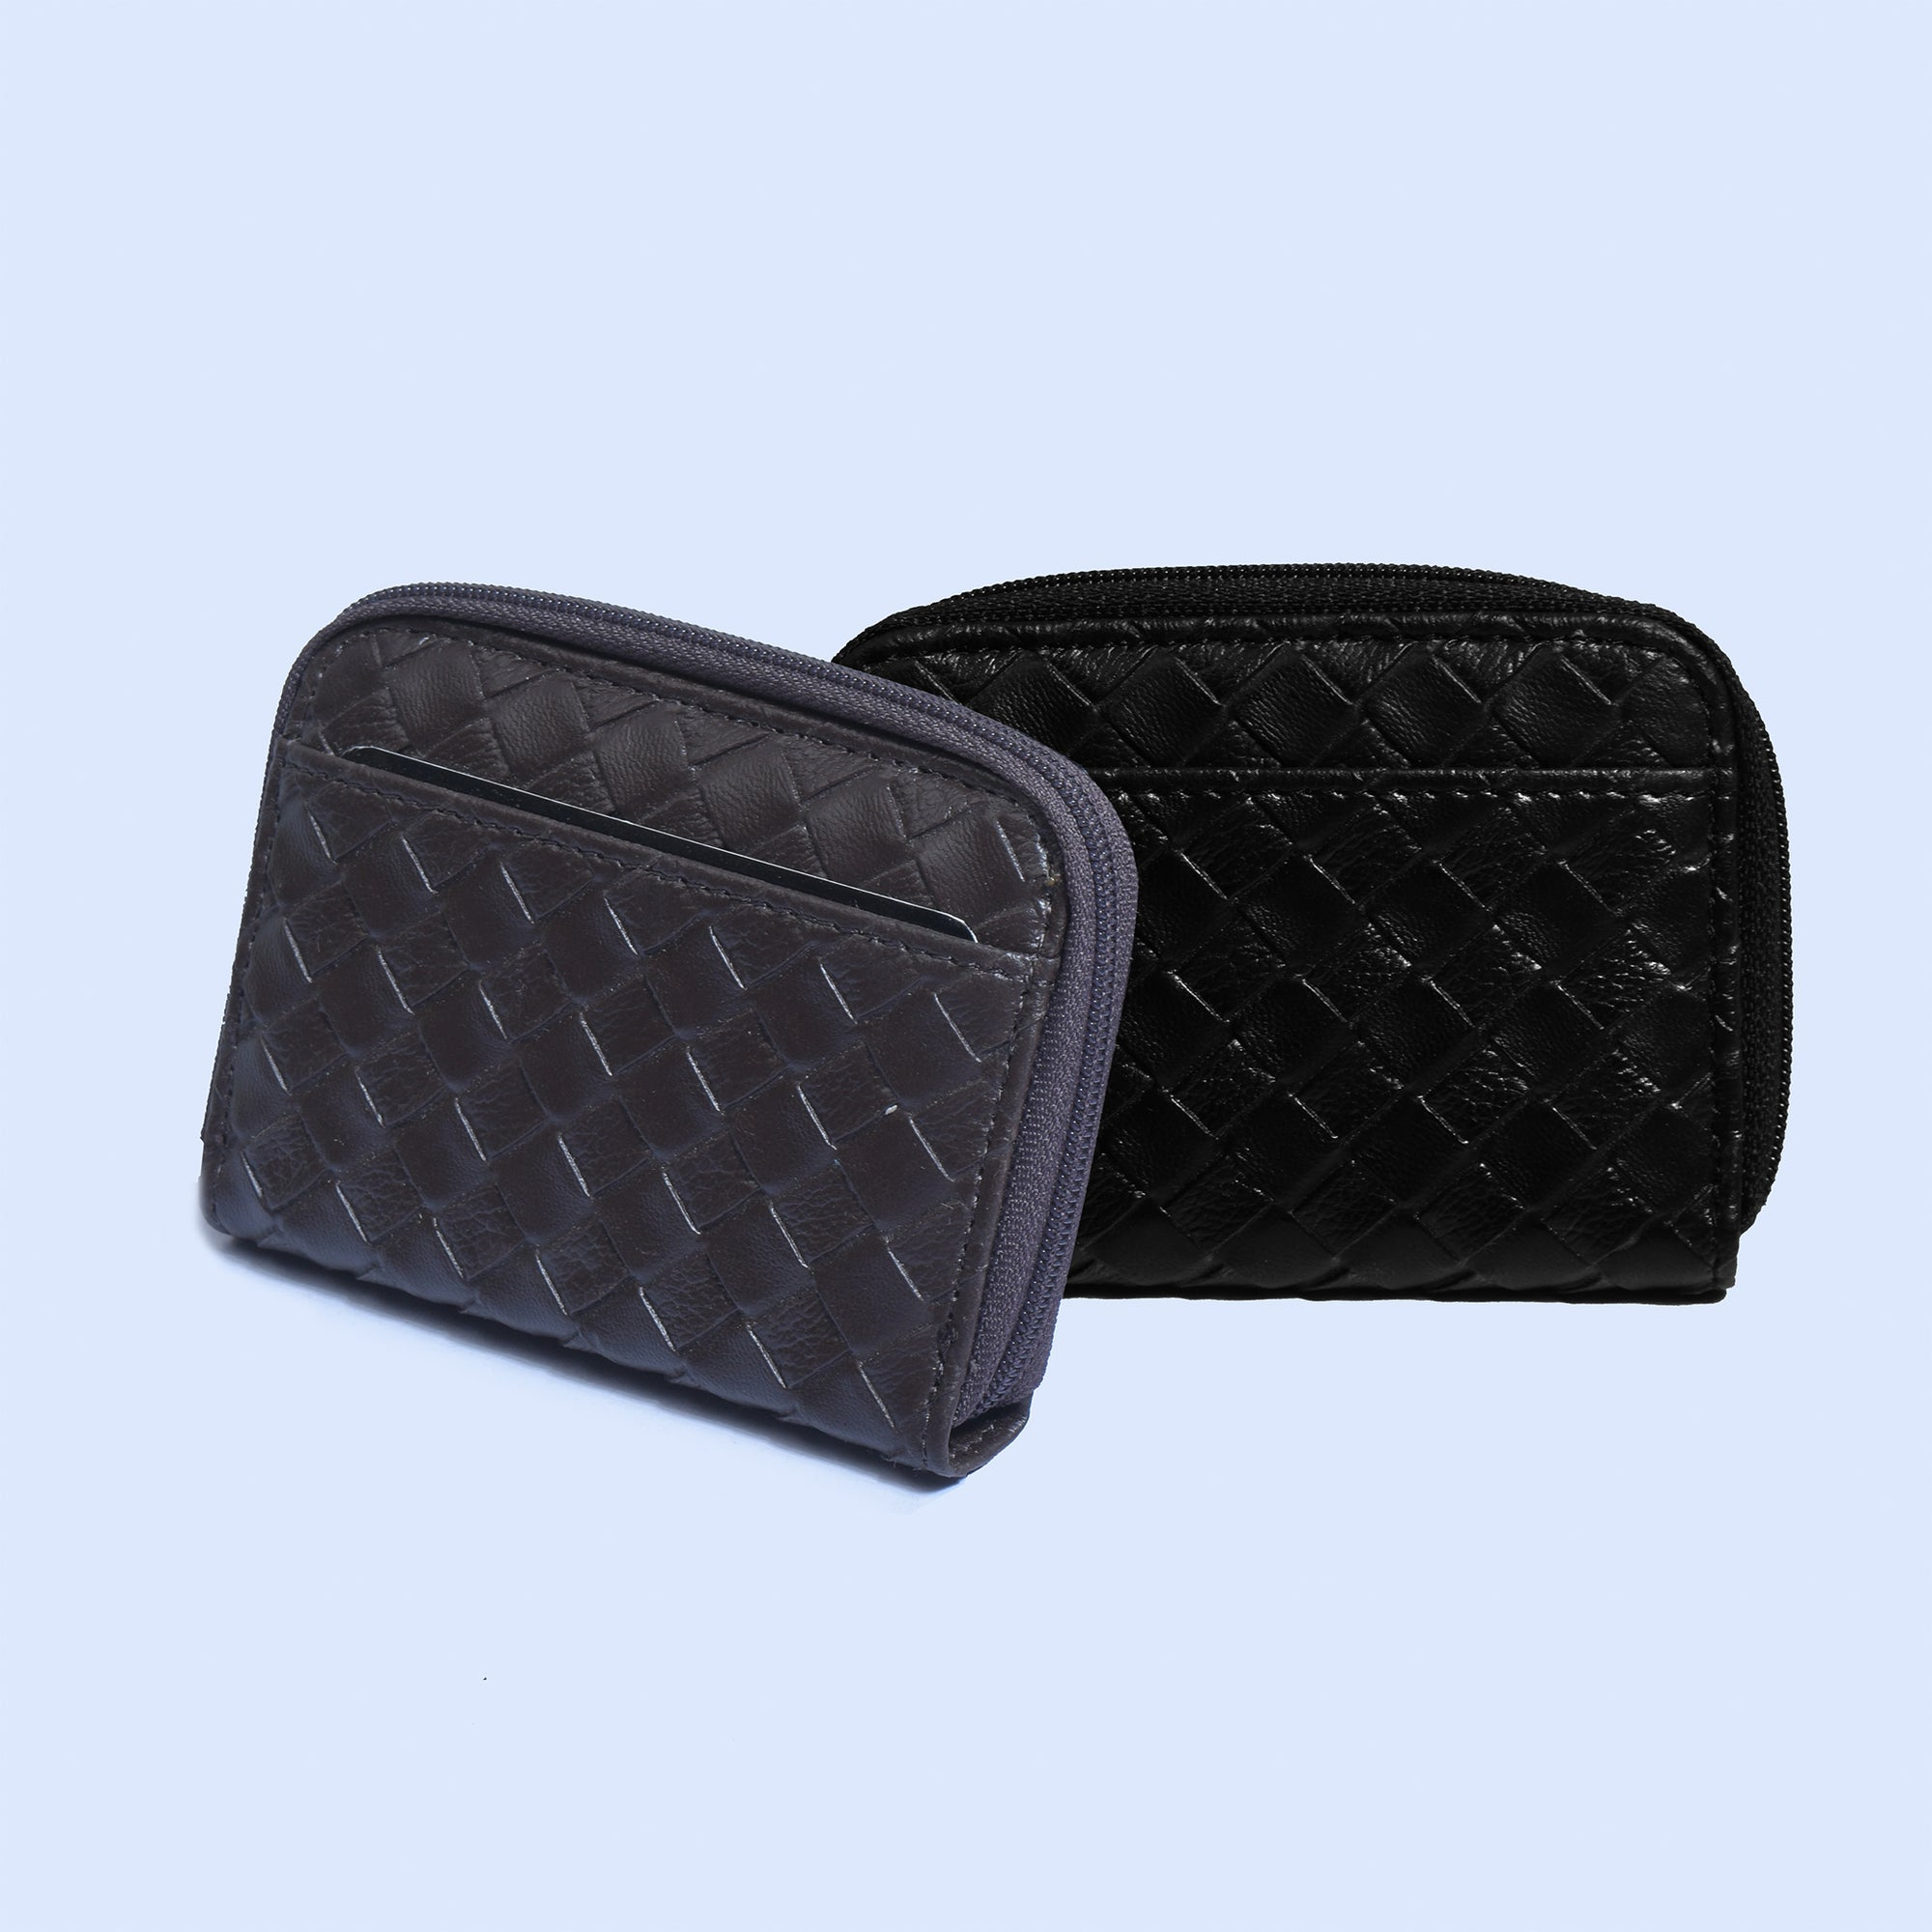 Mini Leather Wallet For Women-NA8037